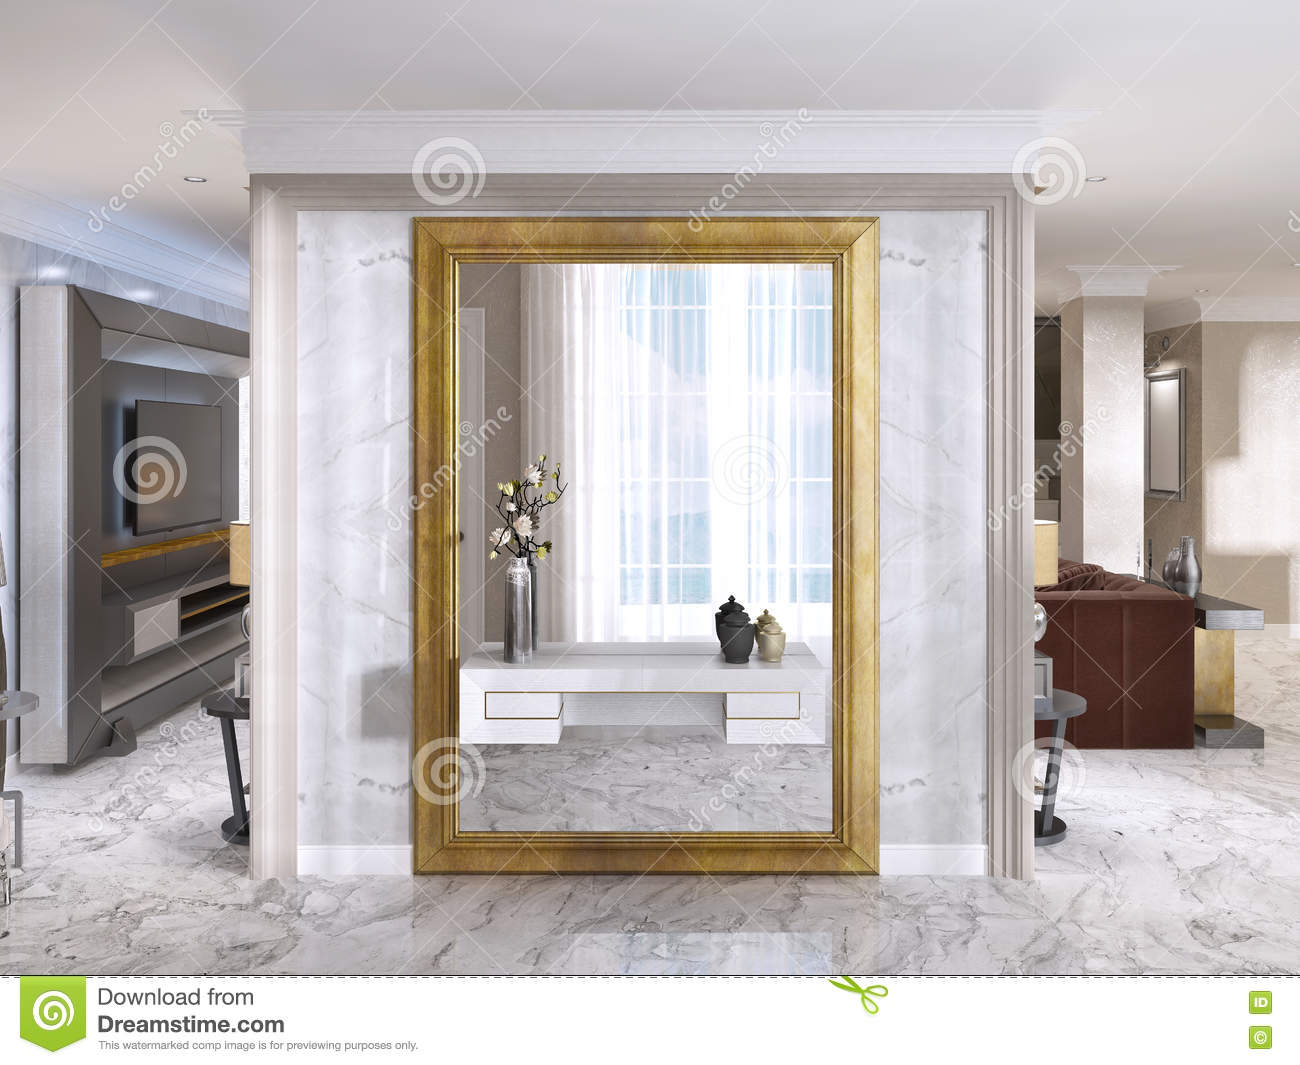 hall d 39 entr e luxueux d 39 art d co avec un grand miroir de. Black Bedroom Furniture Sets. Home Design Ideas